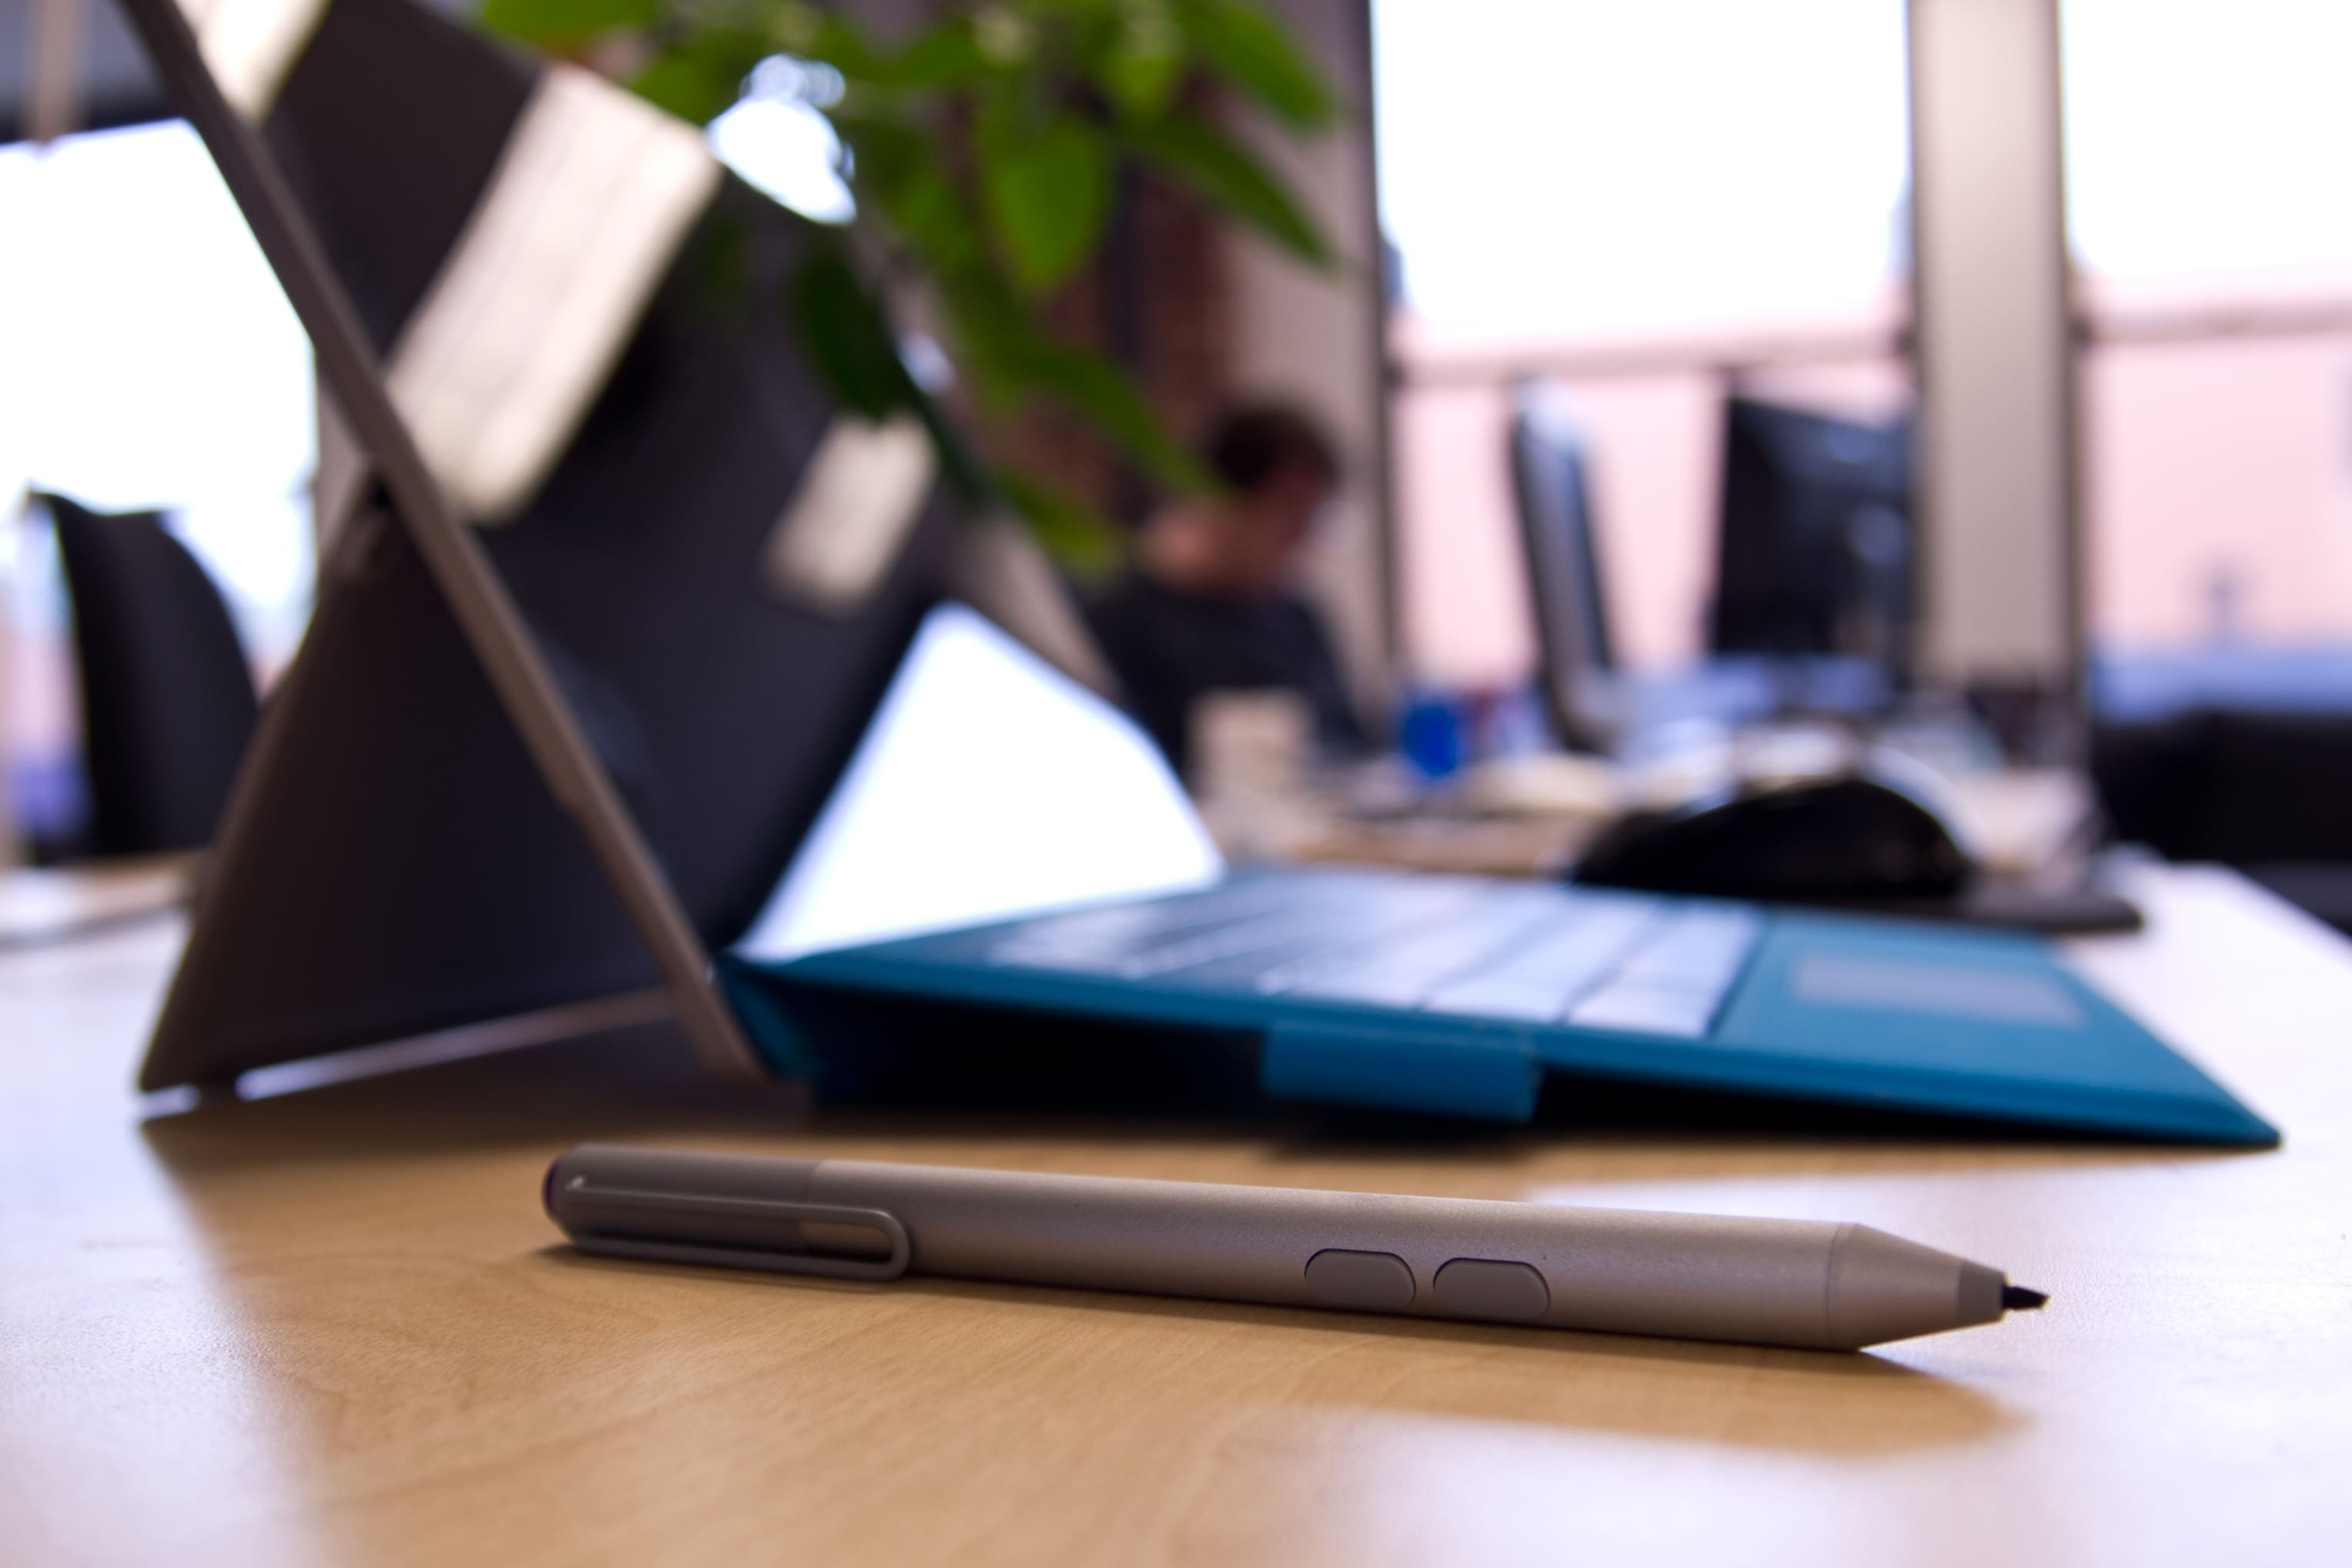 A closer look at the Microsoft Surface Pro 3's pen.